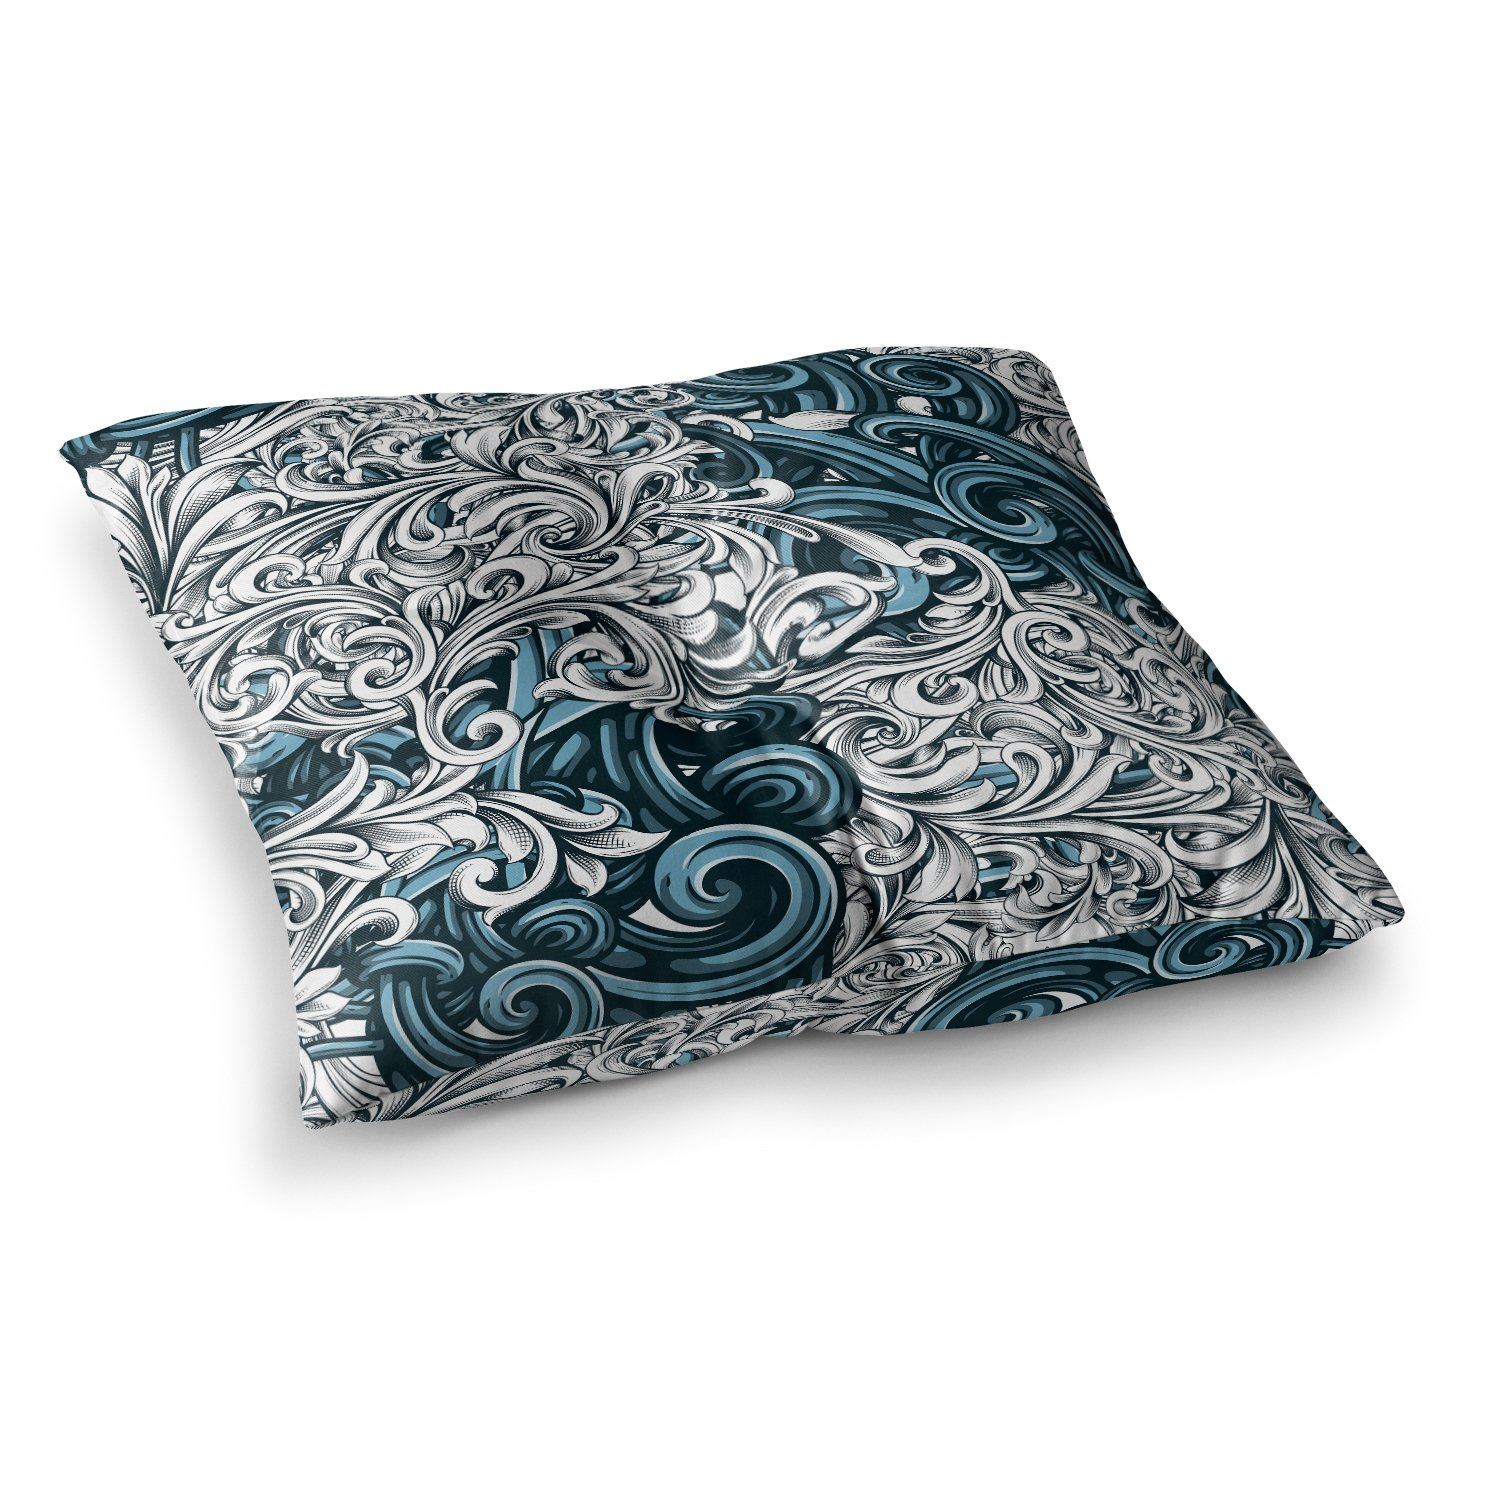 Kess InHouse Nick Atkinson Celtic Floral II Abstract Blue Square Floor Pillow 23 x 23 NA1015BSF01